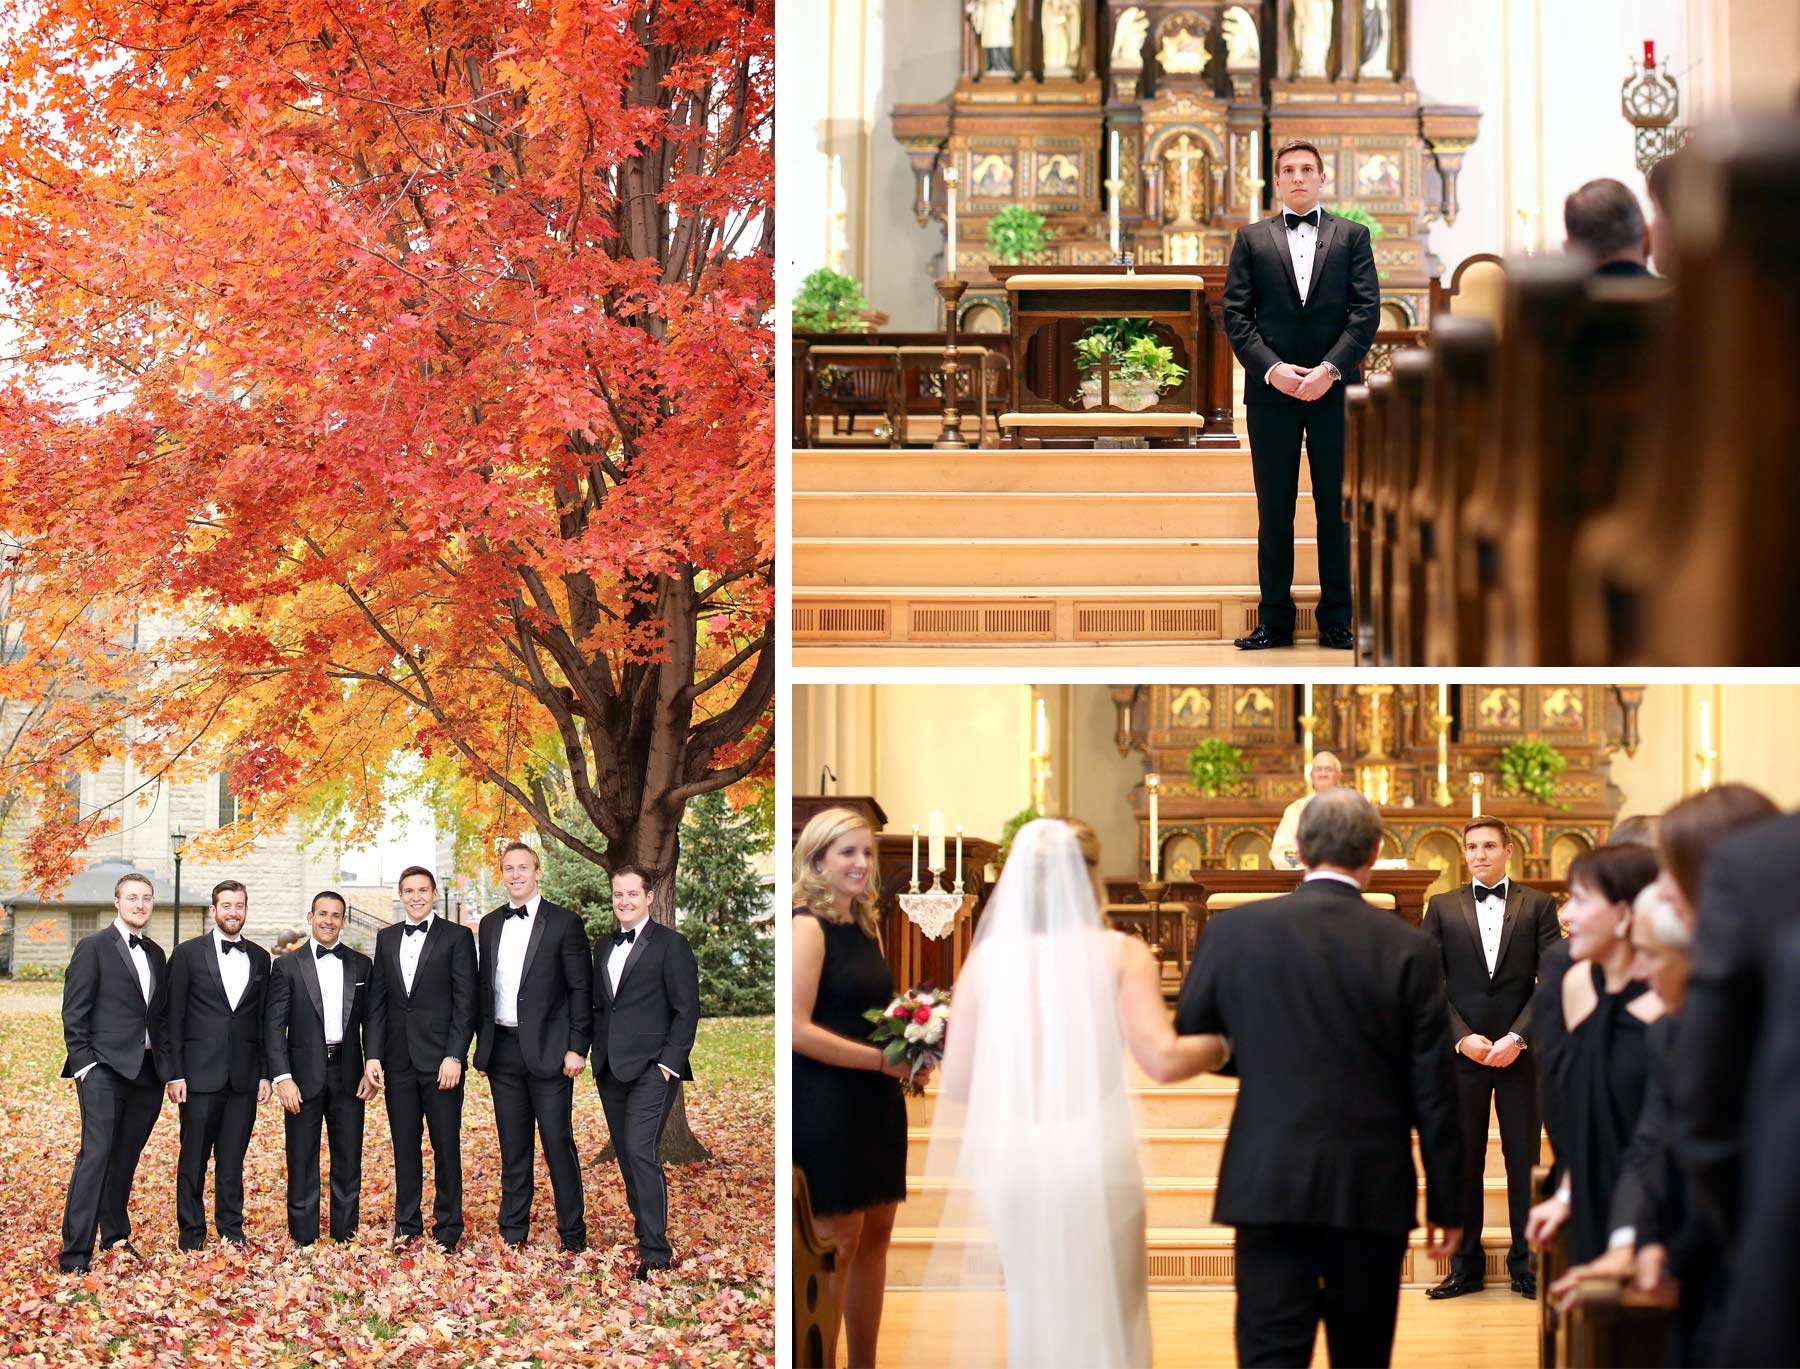 05-Saint-Paul-Minnesota-Wedding-Photographer-by-Andrew-Vick-Photography-Fall-Autumn-Church-of-the-Assumption-Ceremony-Bride-Groom-Groomsmen-Processional-Father-Parents-Kathryn-and-Sam.jpg